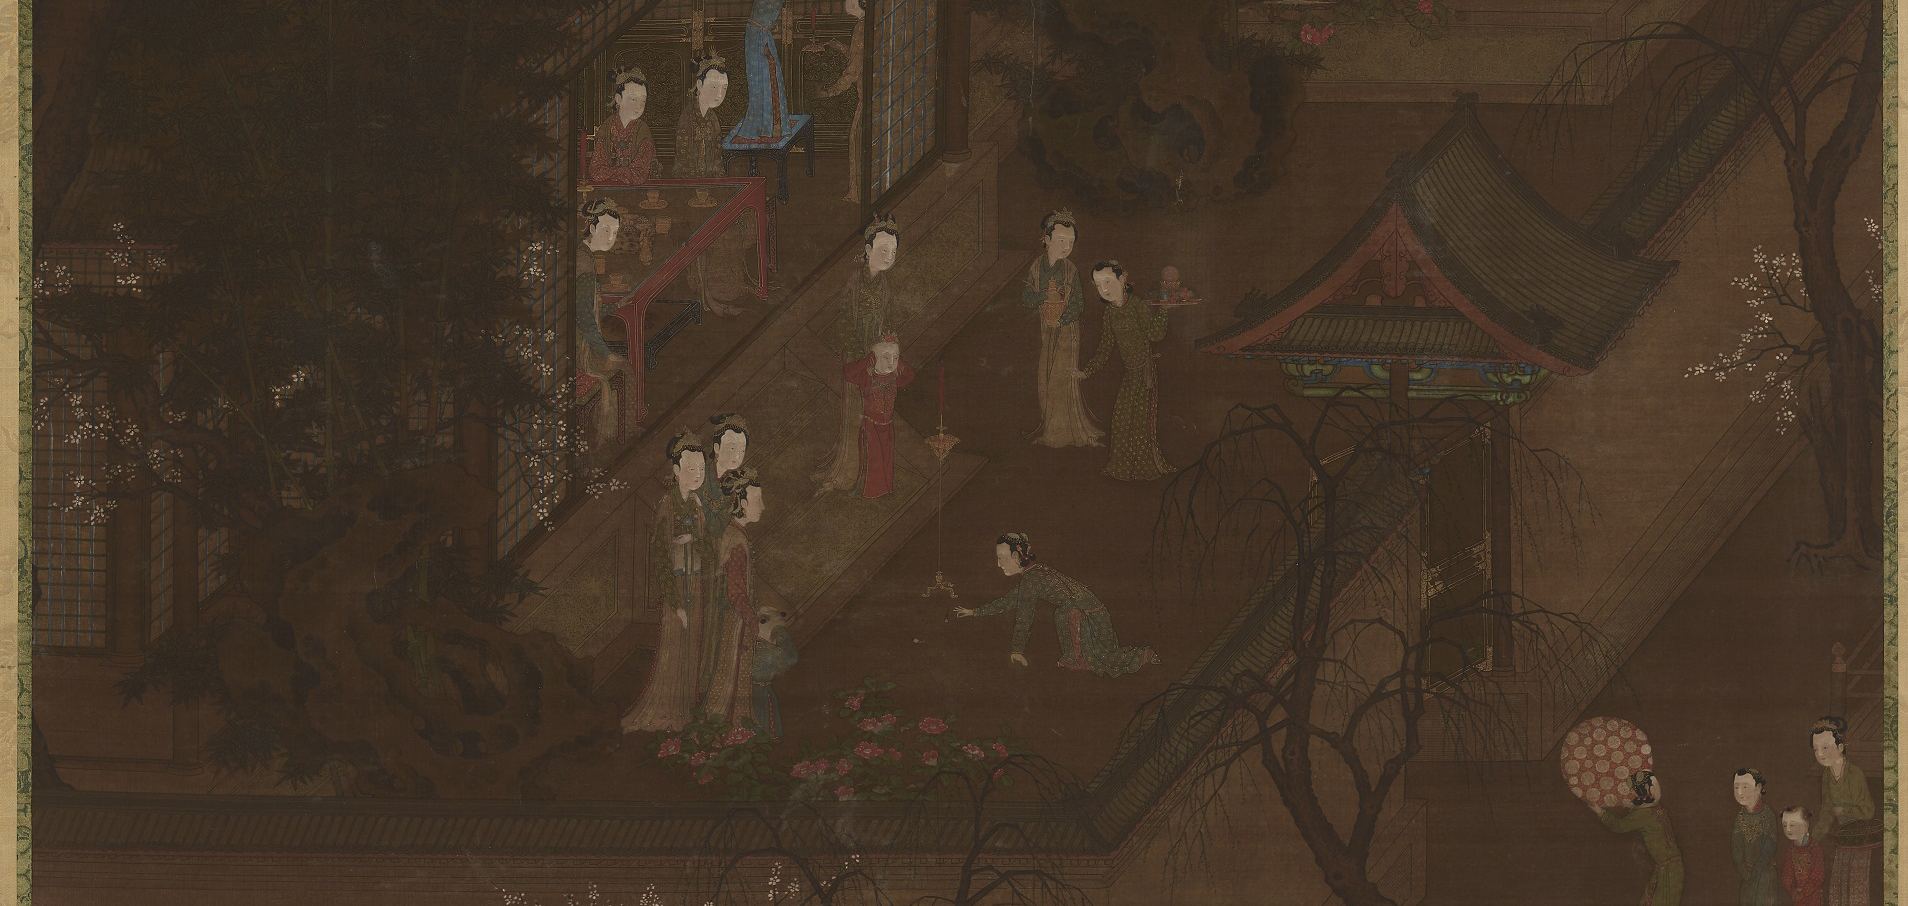 detail painting of women and children interacting inside and outside a building